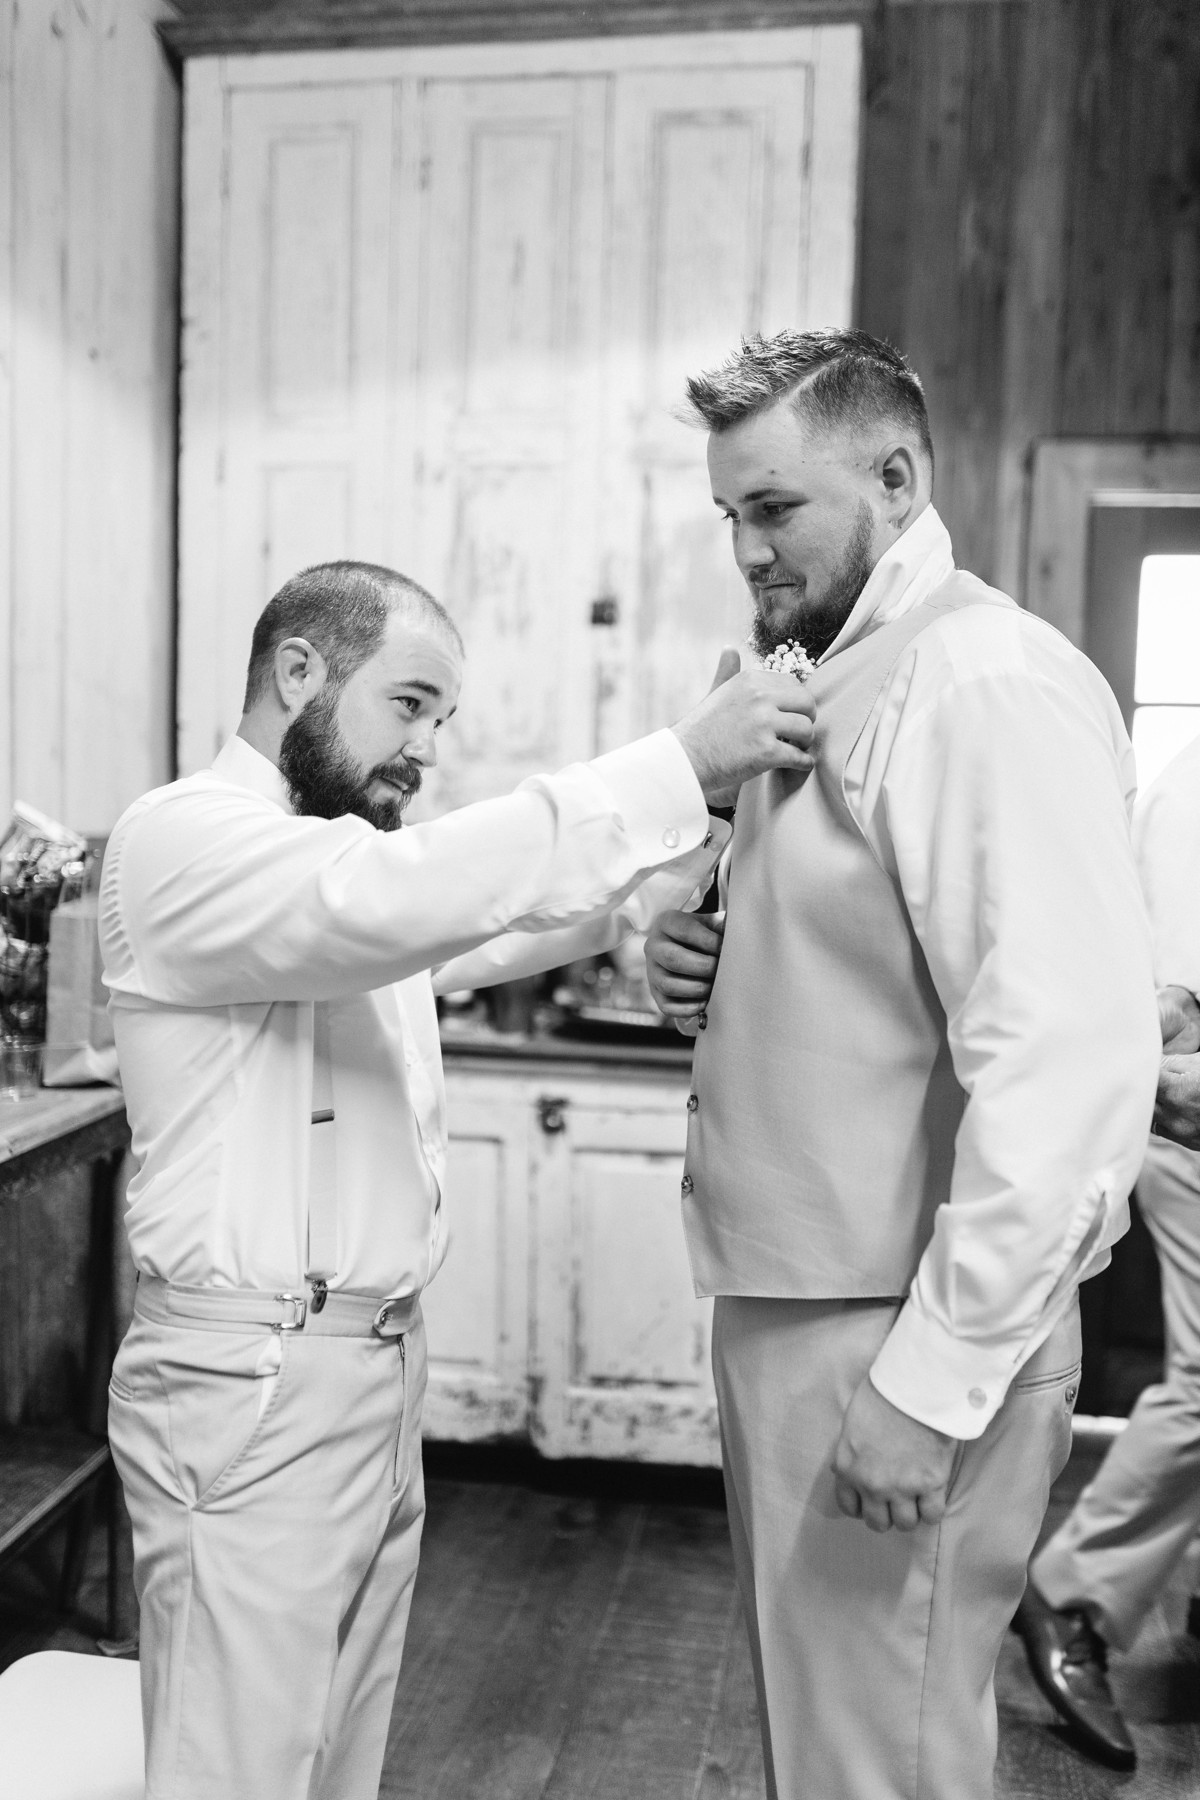 Bressler-Wedding-Preview-Tuckers-Farmhouse-Jacksonville-Wedding-Photographer-Chantell-Rae026.jpg